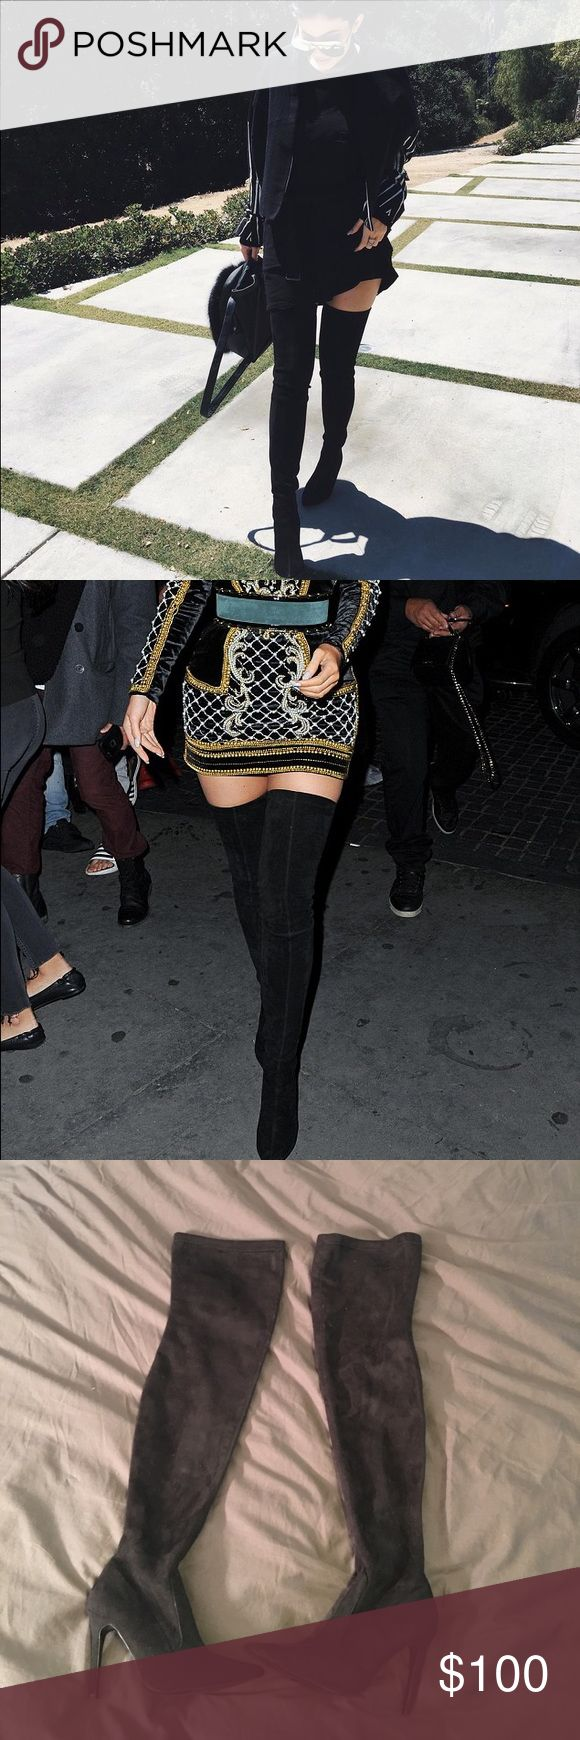 Kylie Jenner boots Kylie Jenner suede boots, brand is cape robin. These are a must have! Get the Kylie Jenner look for a fraction of the price. Size 6 black suede thigh high boots! Steve Madden Shoes